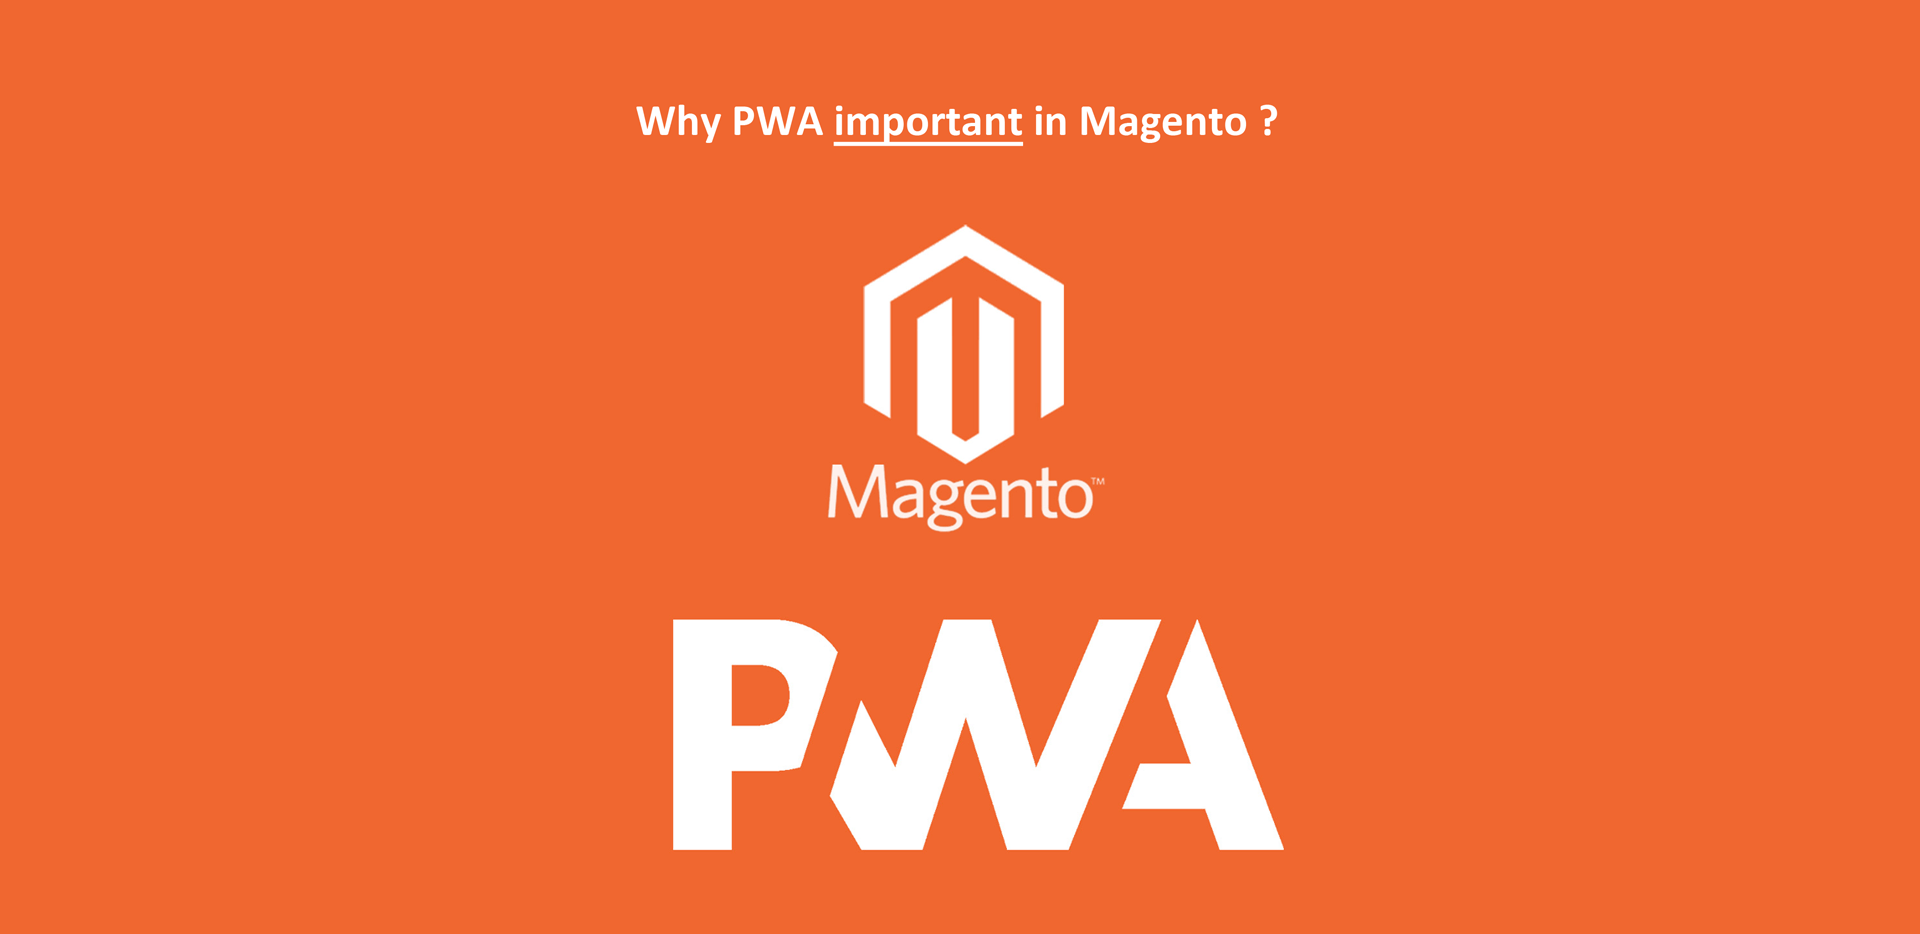 Why are PWAs important in Magento E-commerce?